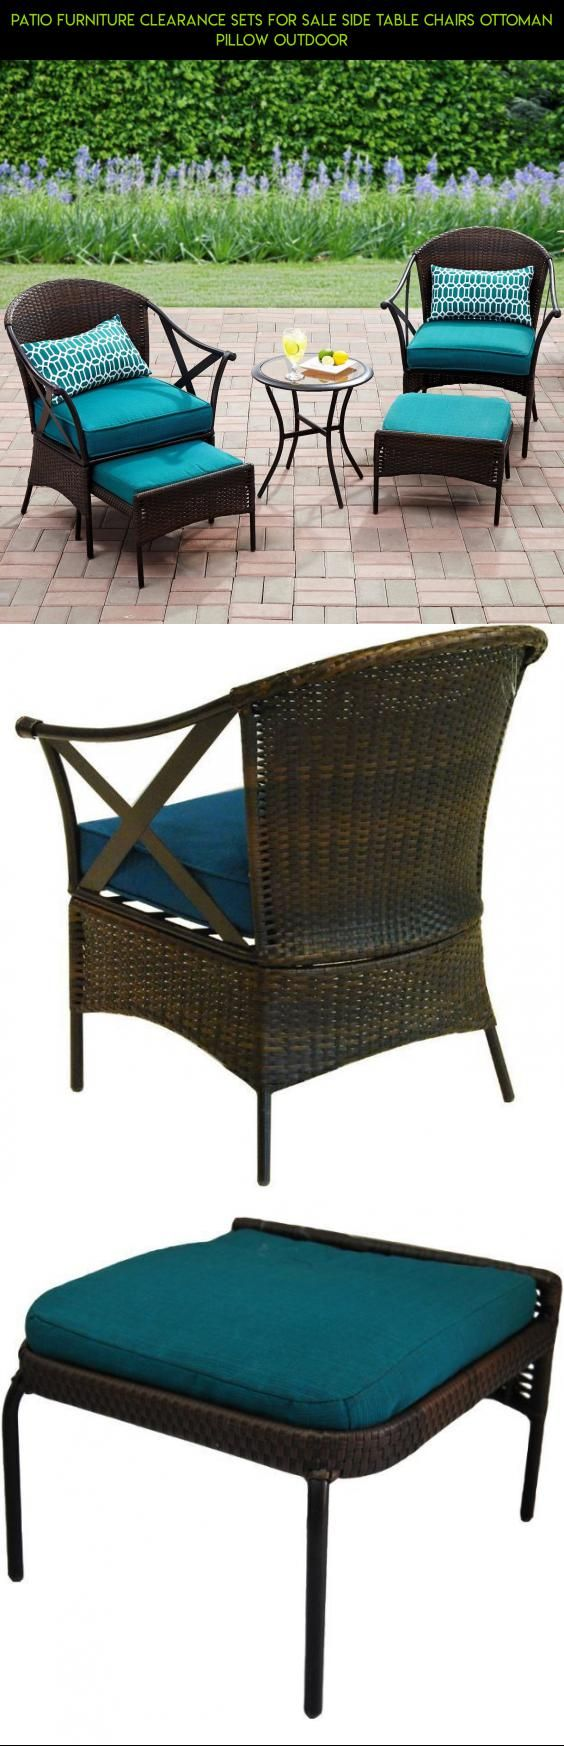 Patio Furniture Clearance Sets For Sale Side Table Chairs Ottoman Pillow  Outdoor #shopping #fpv